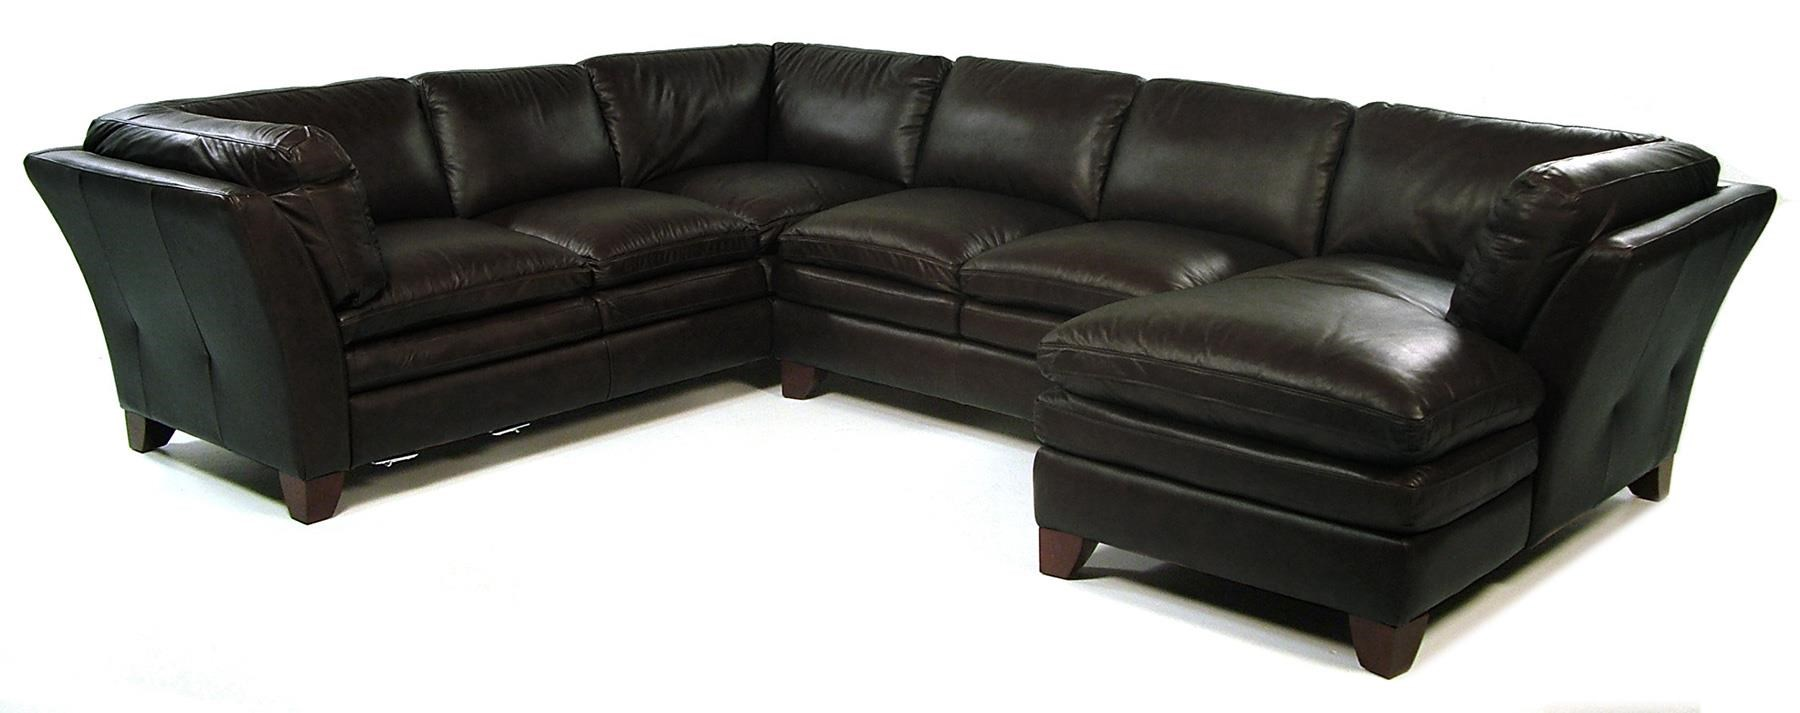 Loft Leather Pacific 3 Piece Sectional w/ RAF Chaise - Item Number: 7203-51+30+29